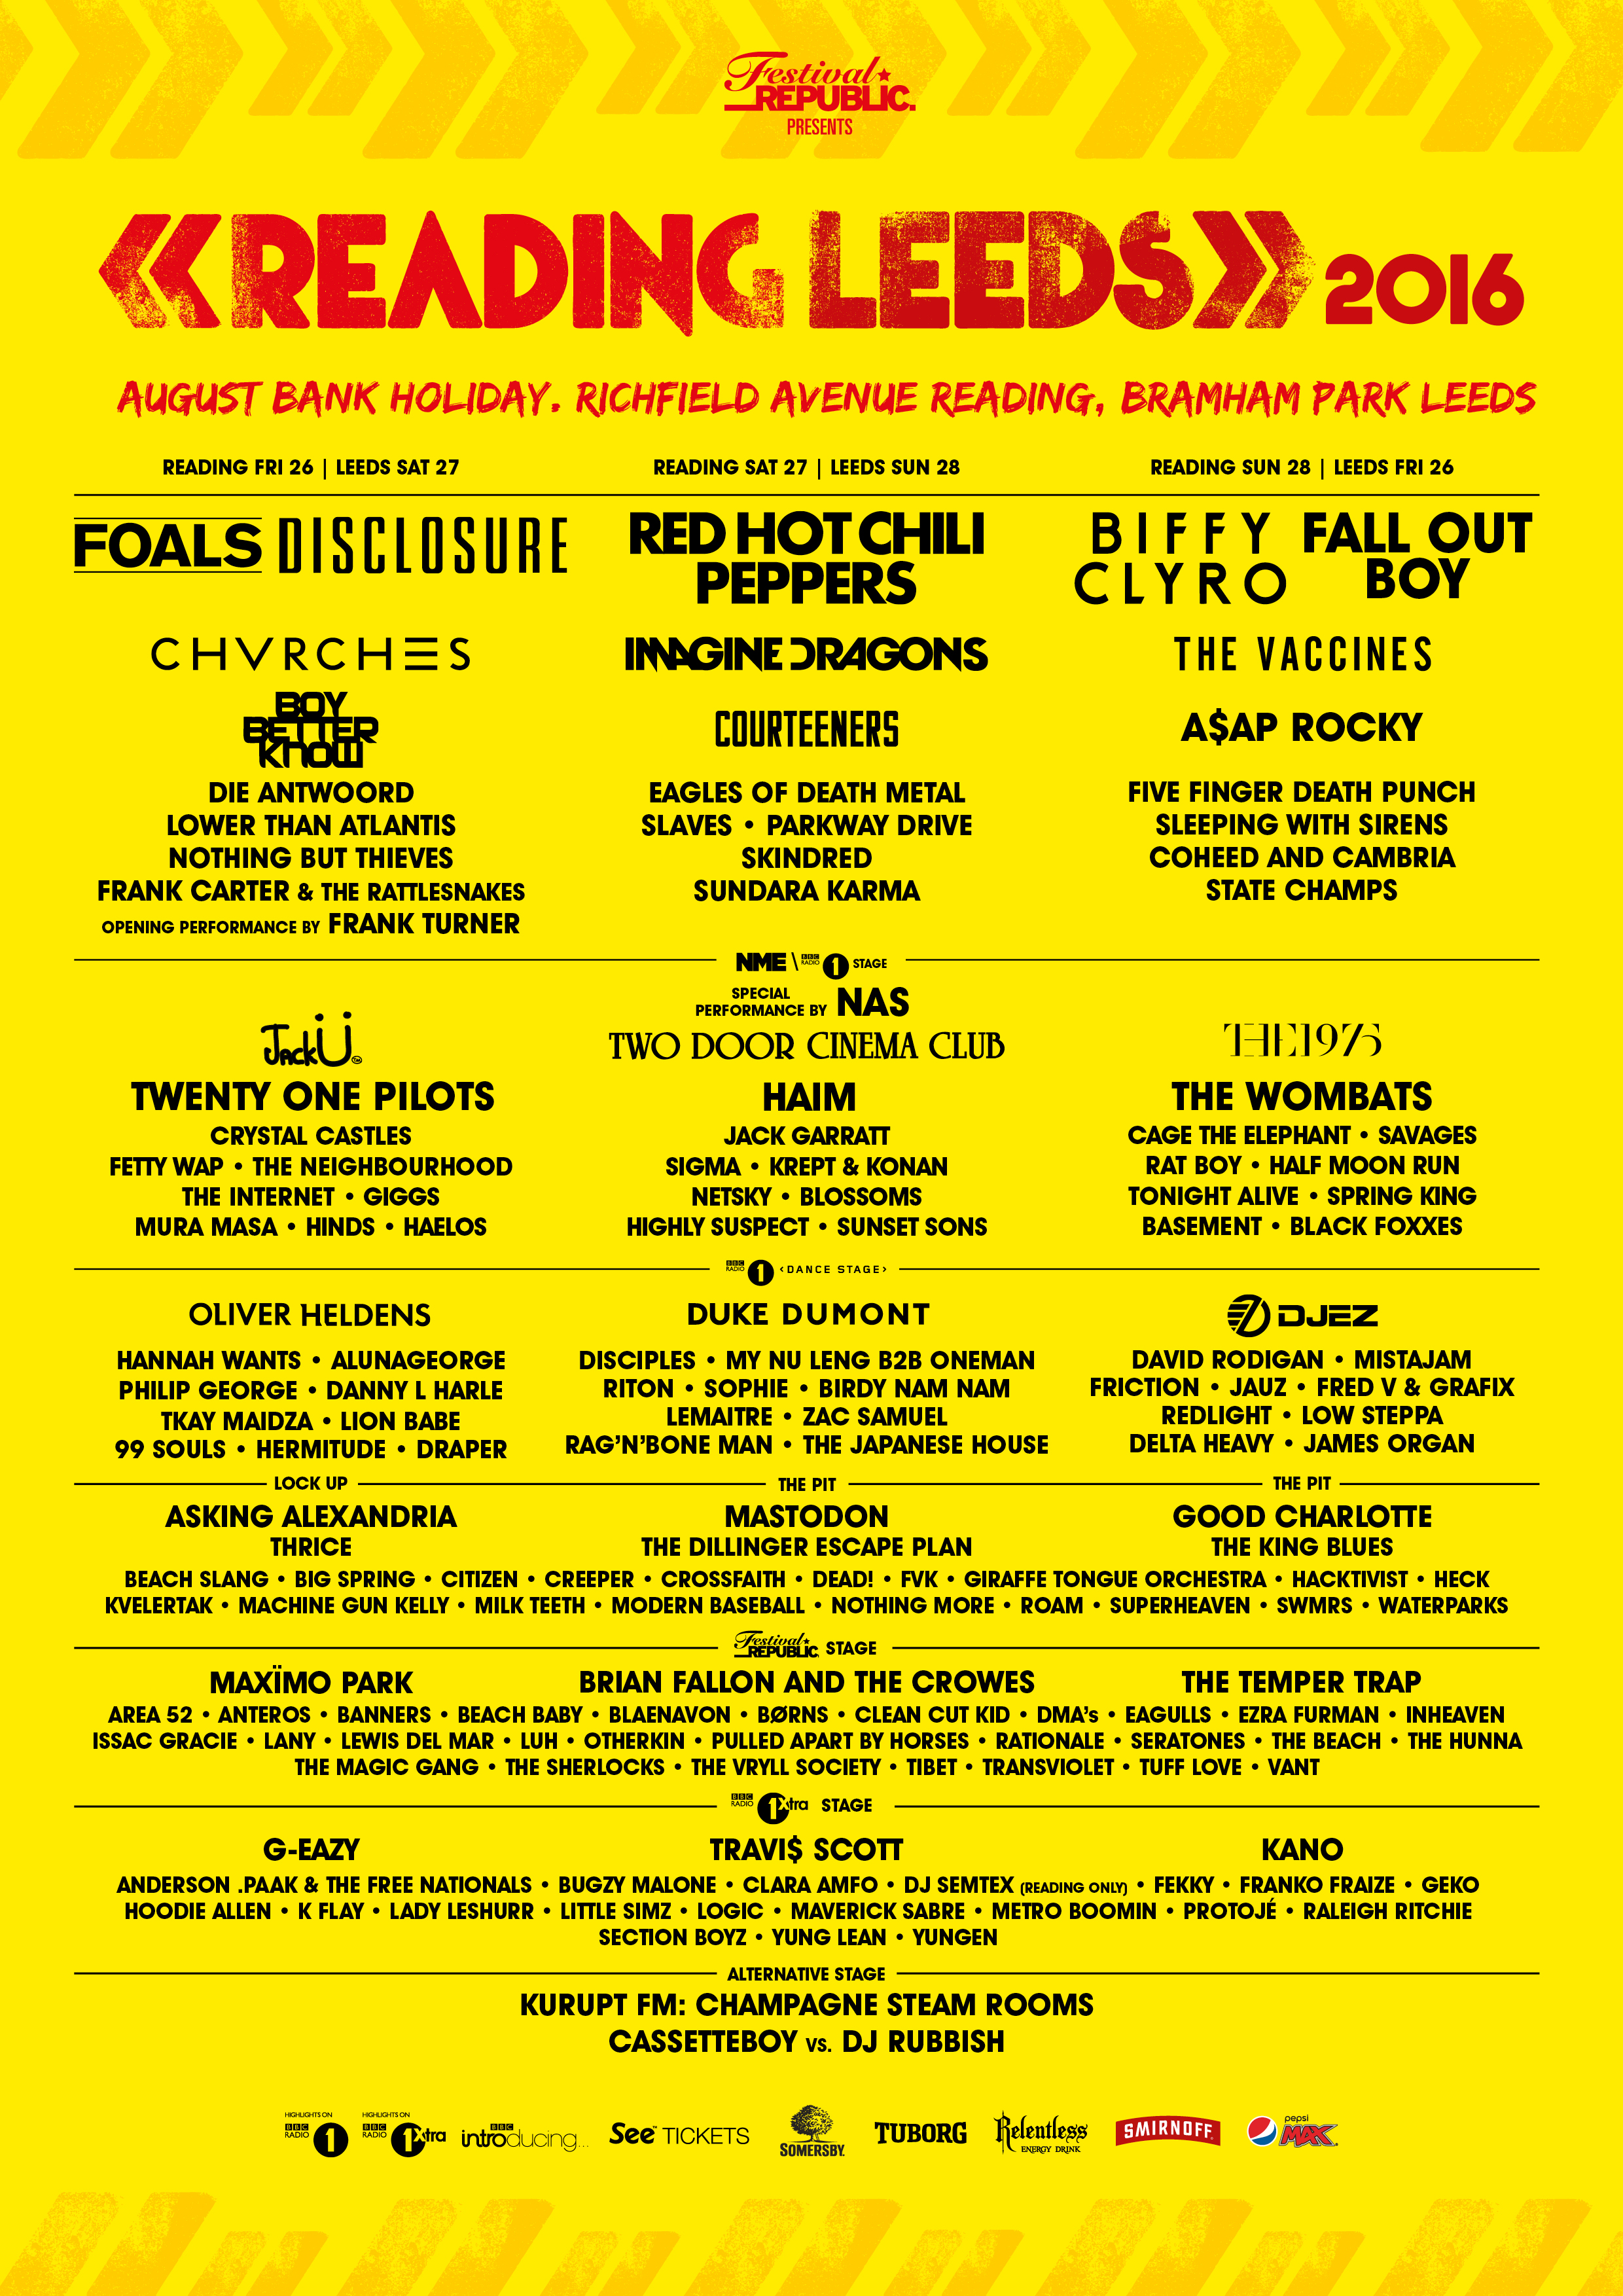 ReadingLeeds 2016 A4 Line up 30